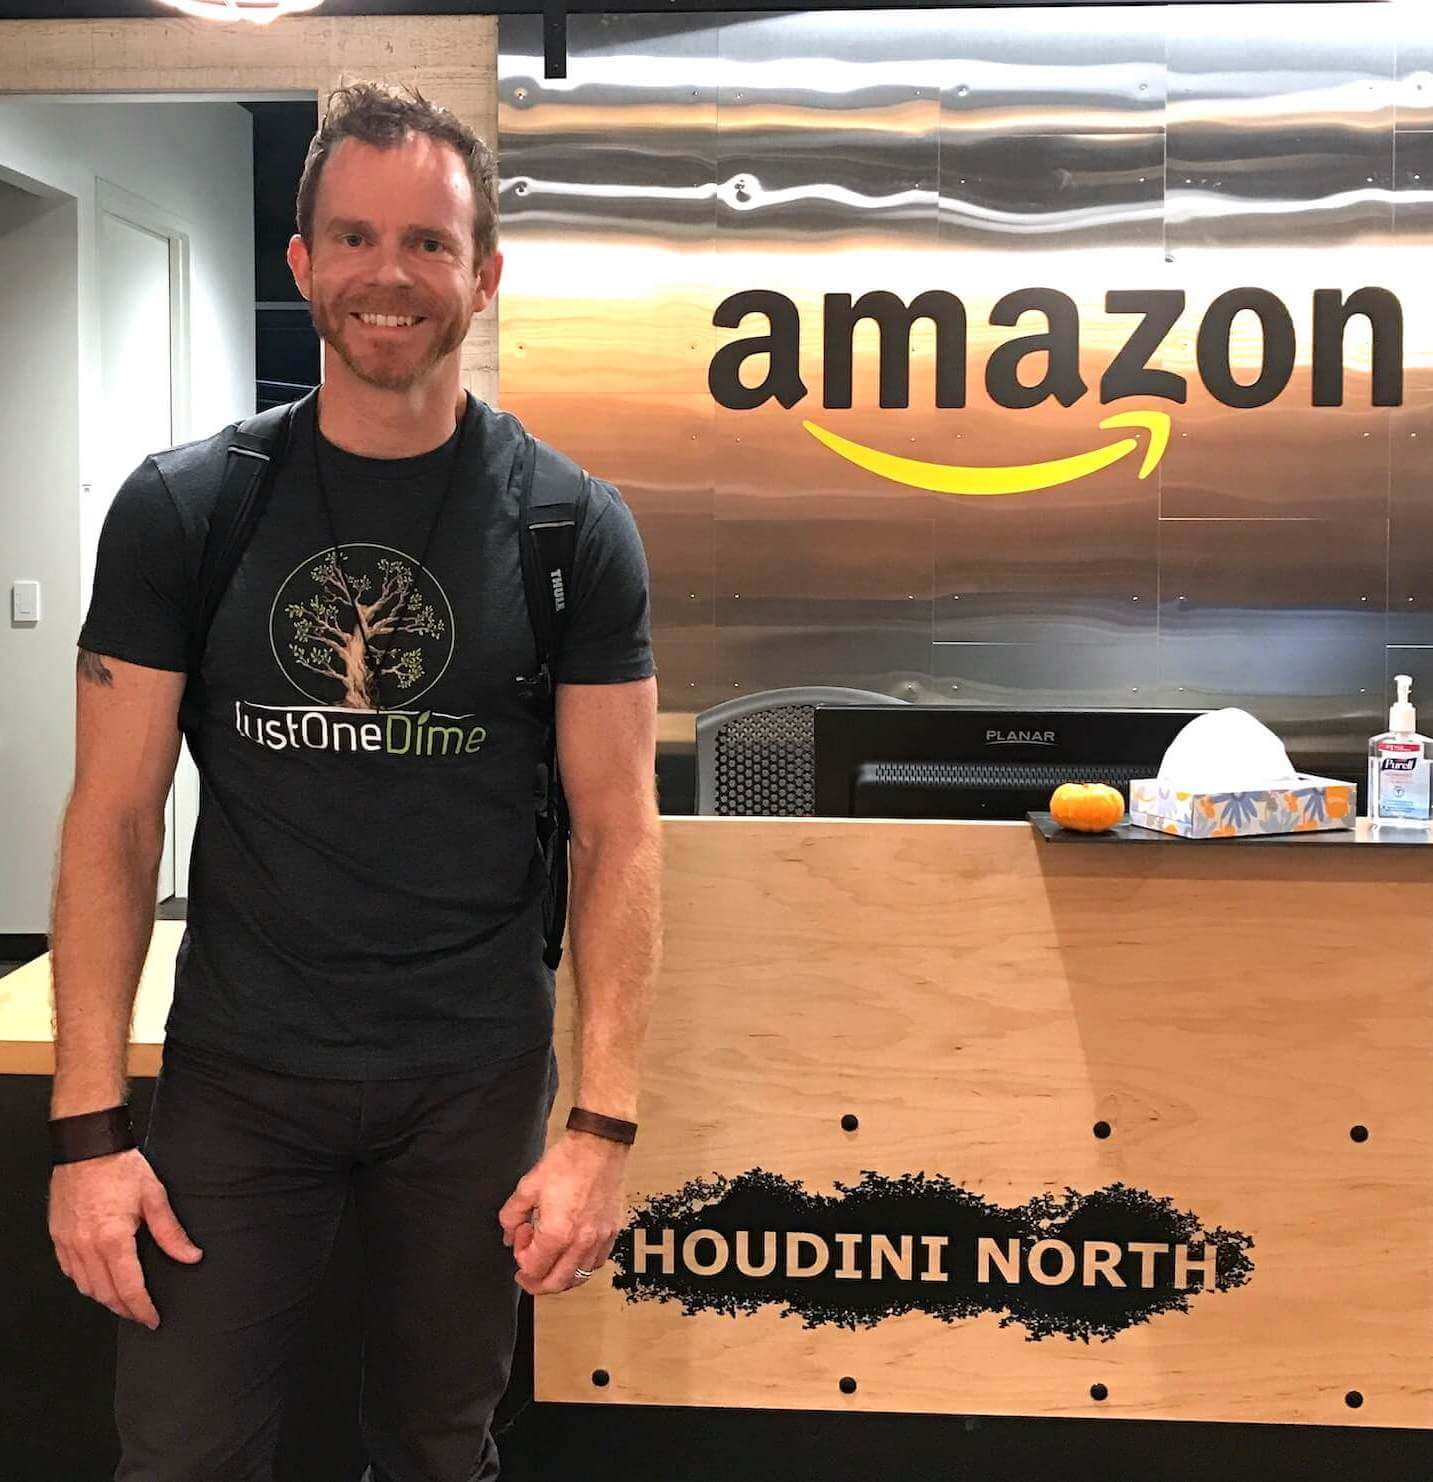 Amazon invited our leader, Seth Kniep | Just One Dime